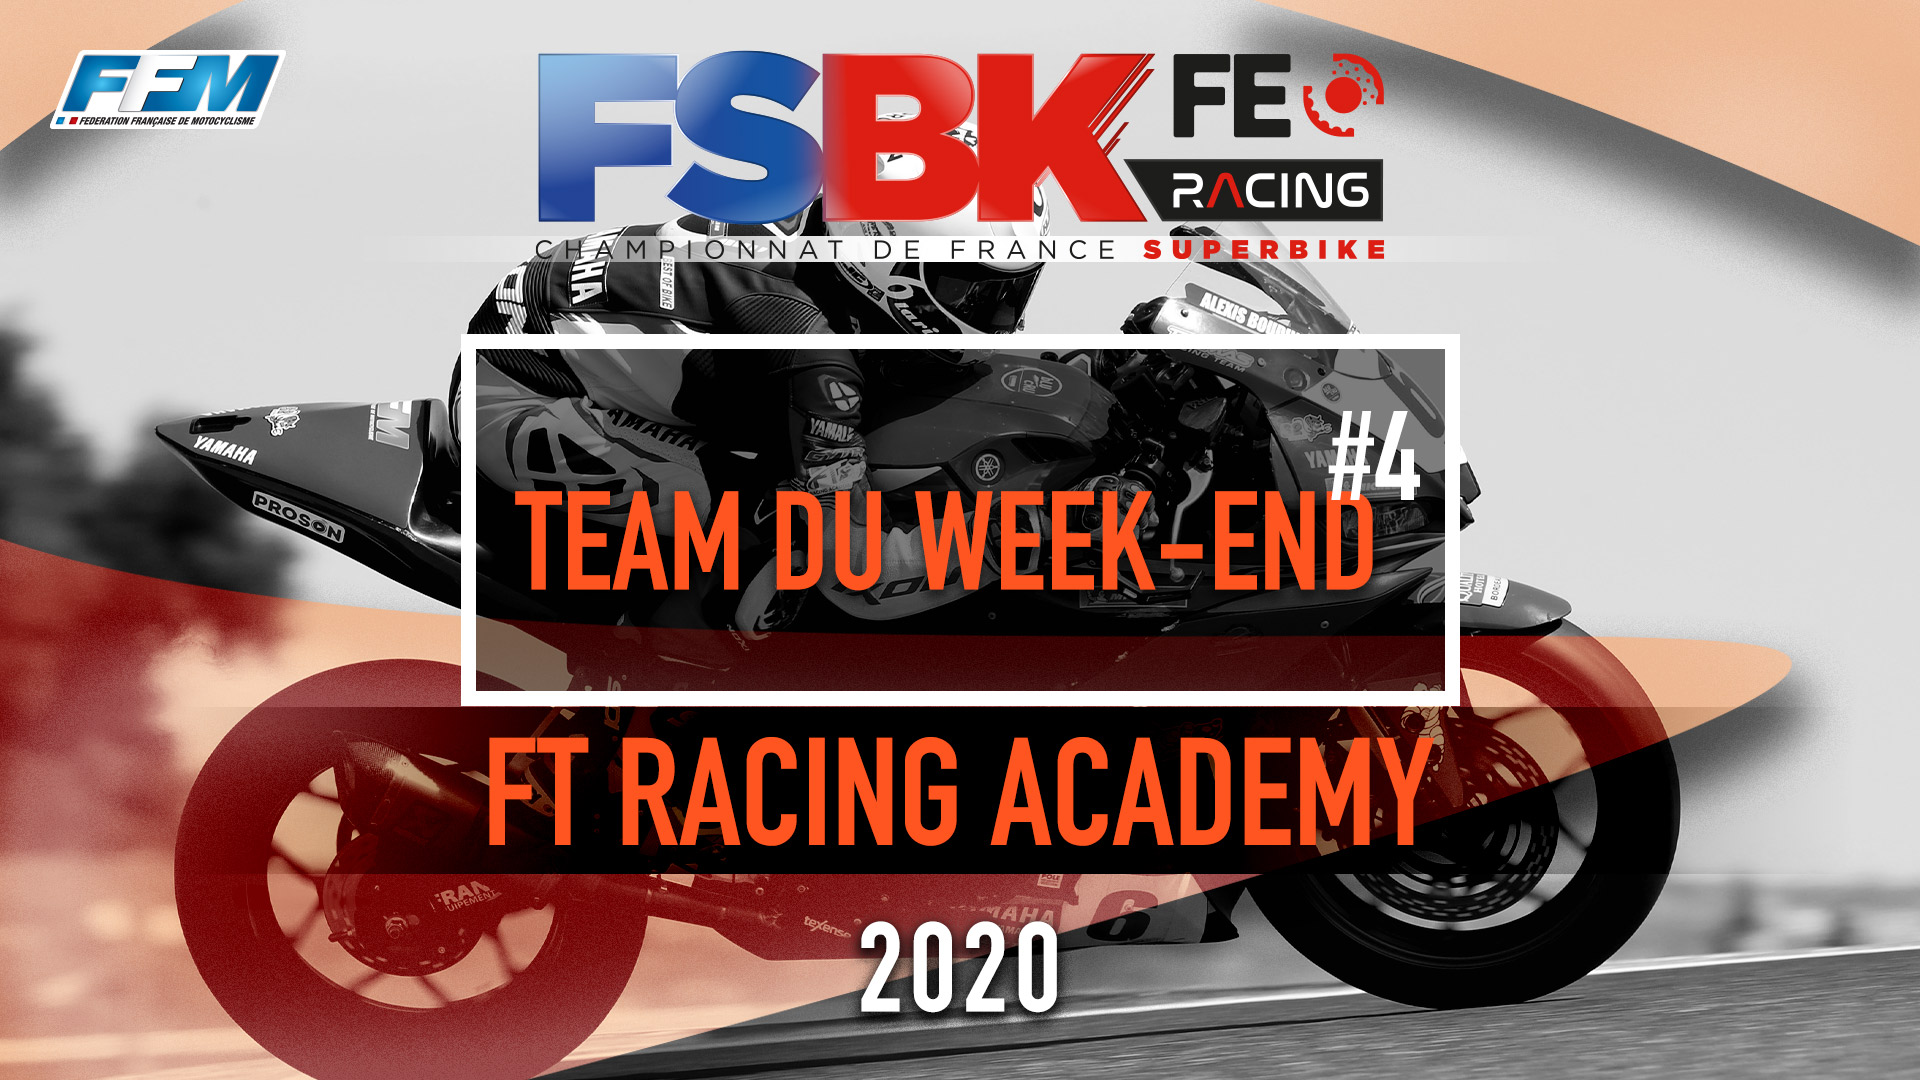 // LE TEAM DU WEEKEND – FT RACING ACADEMY //